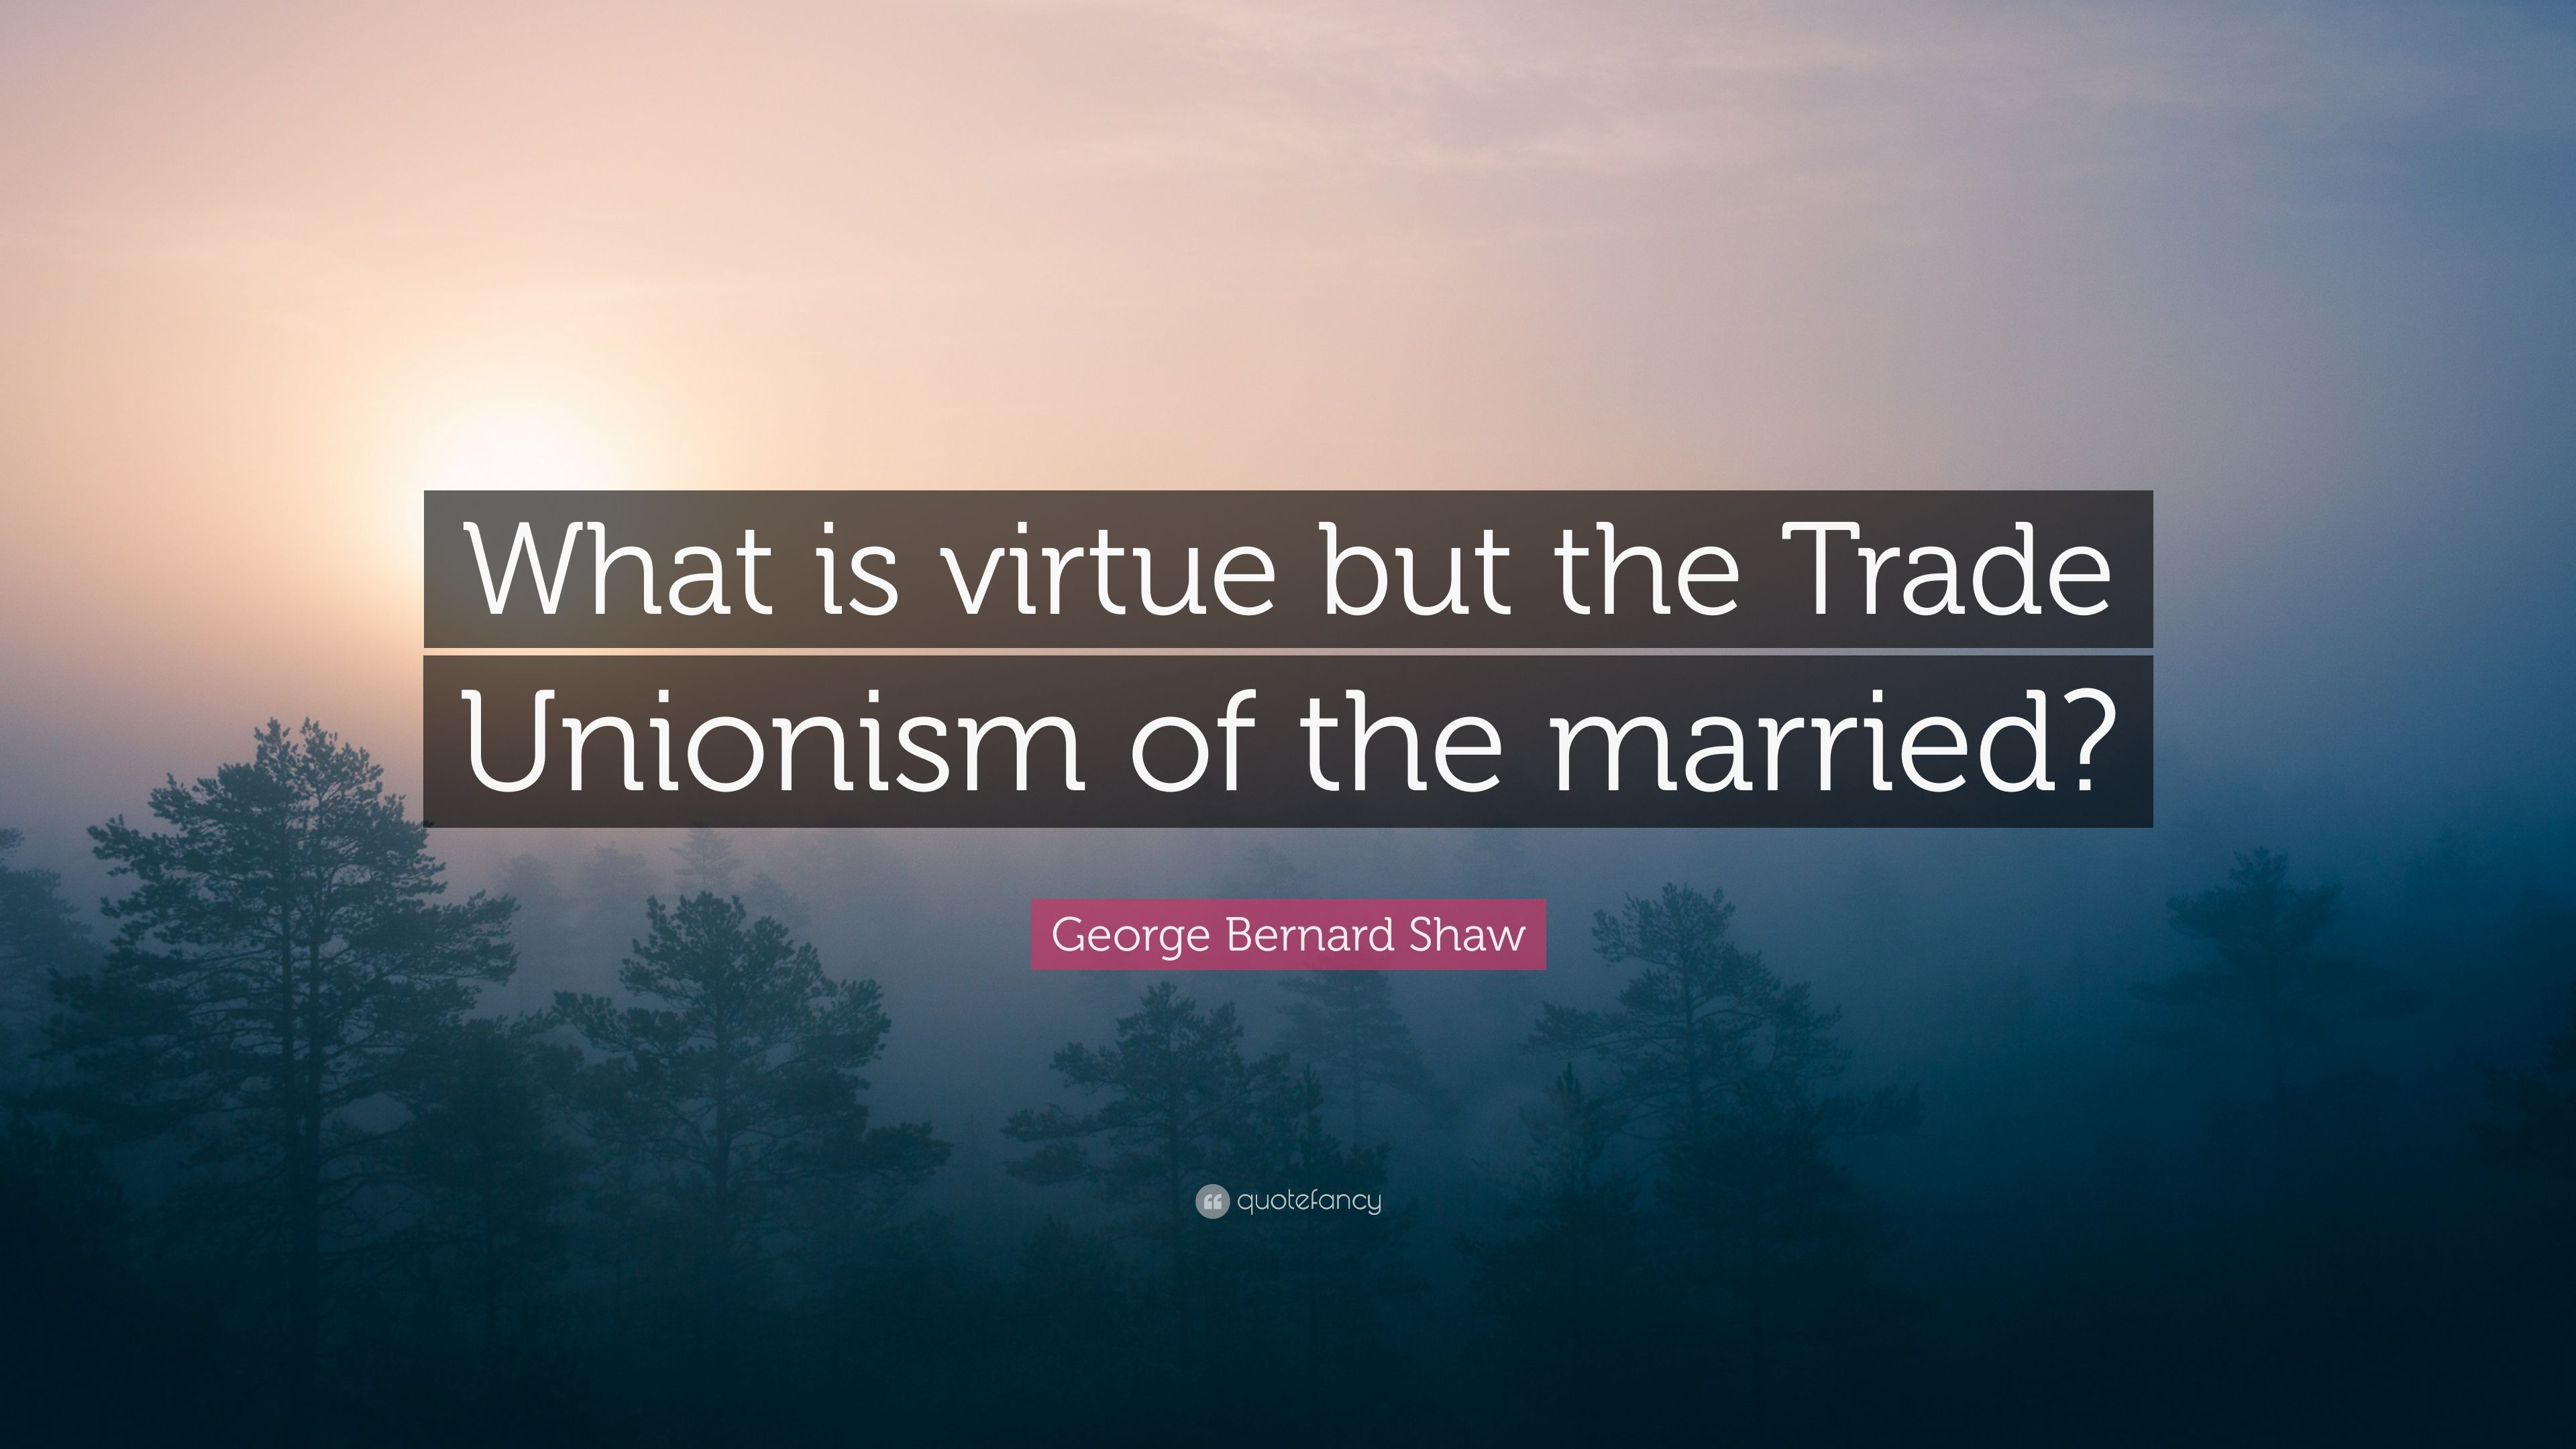 george bernard shaw quote what is virtue but the trade unionism of